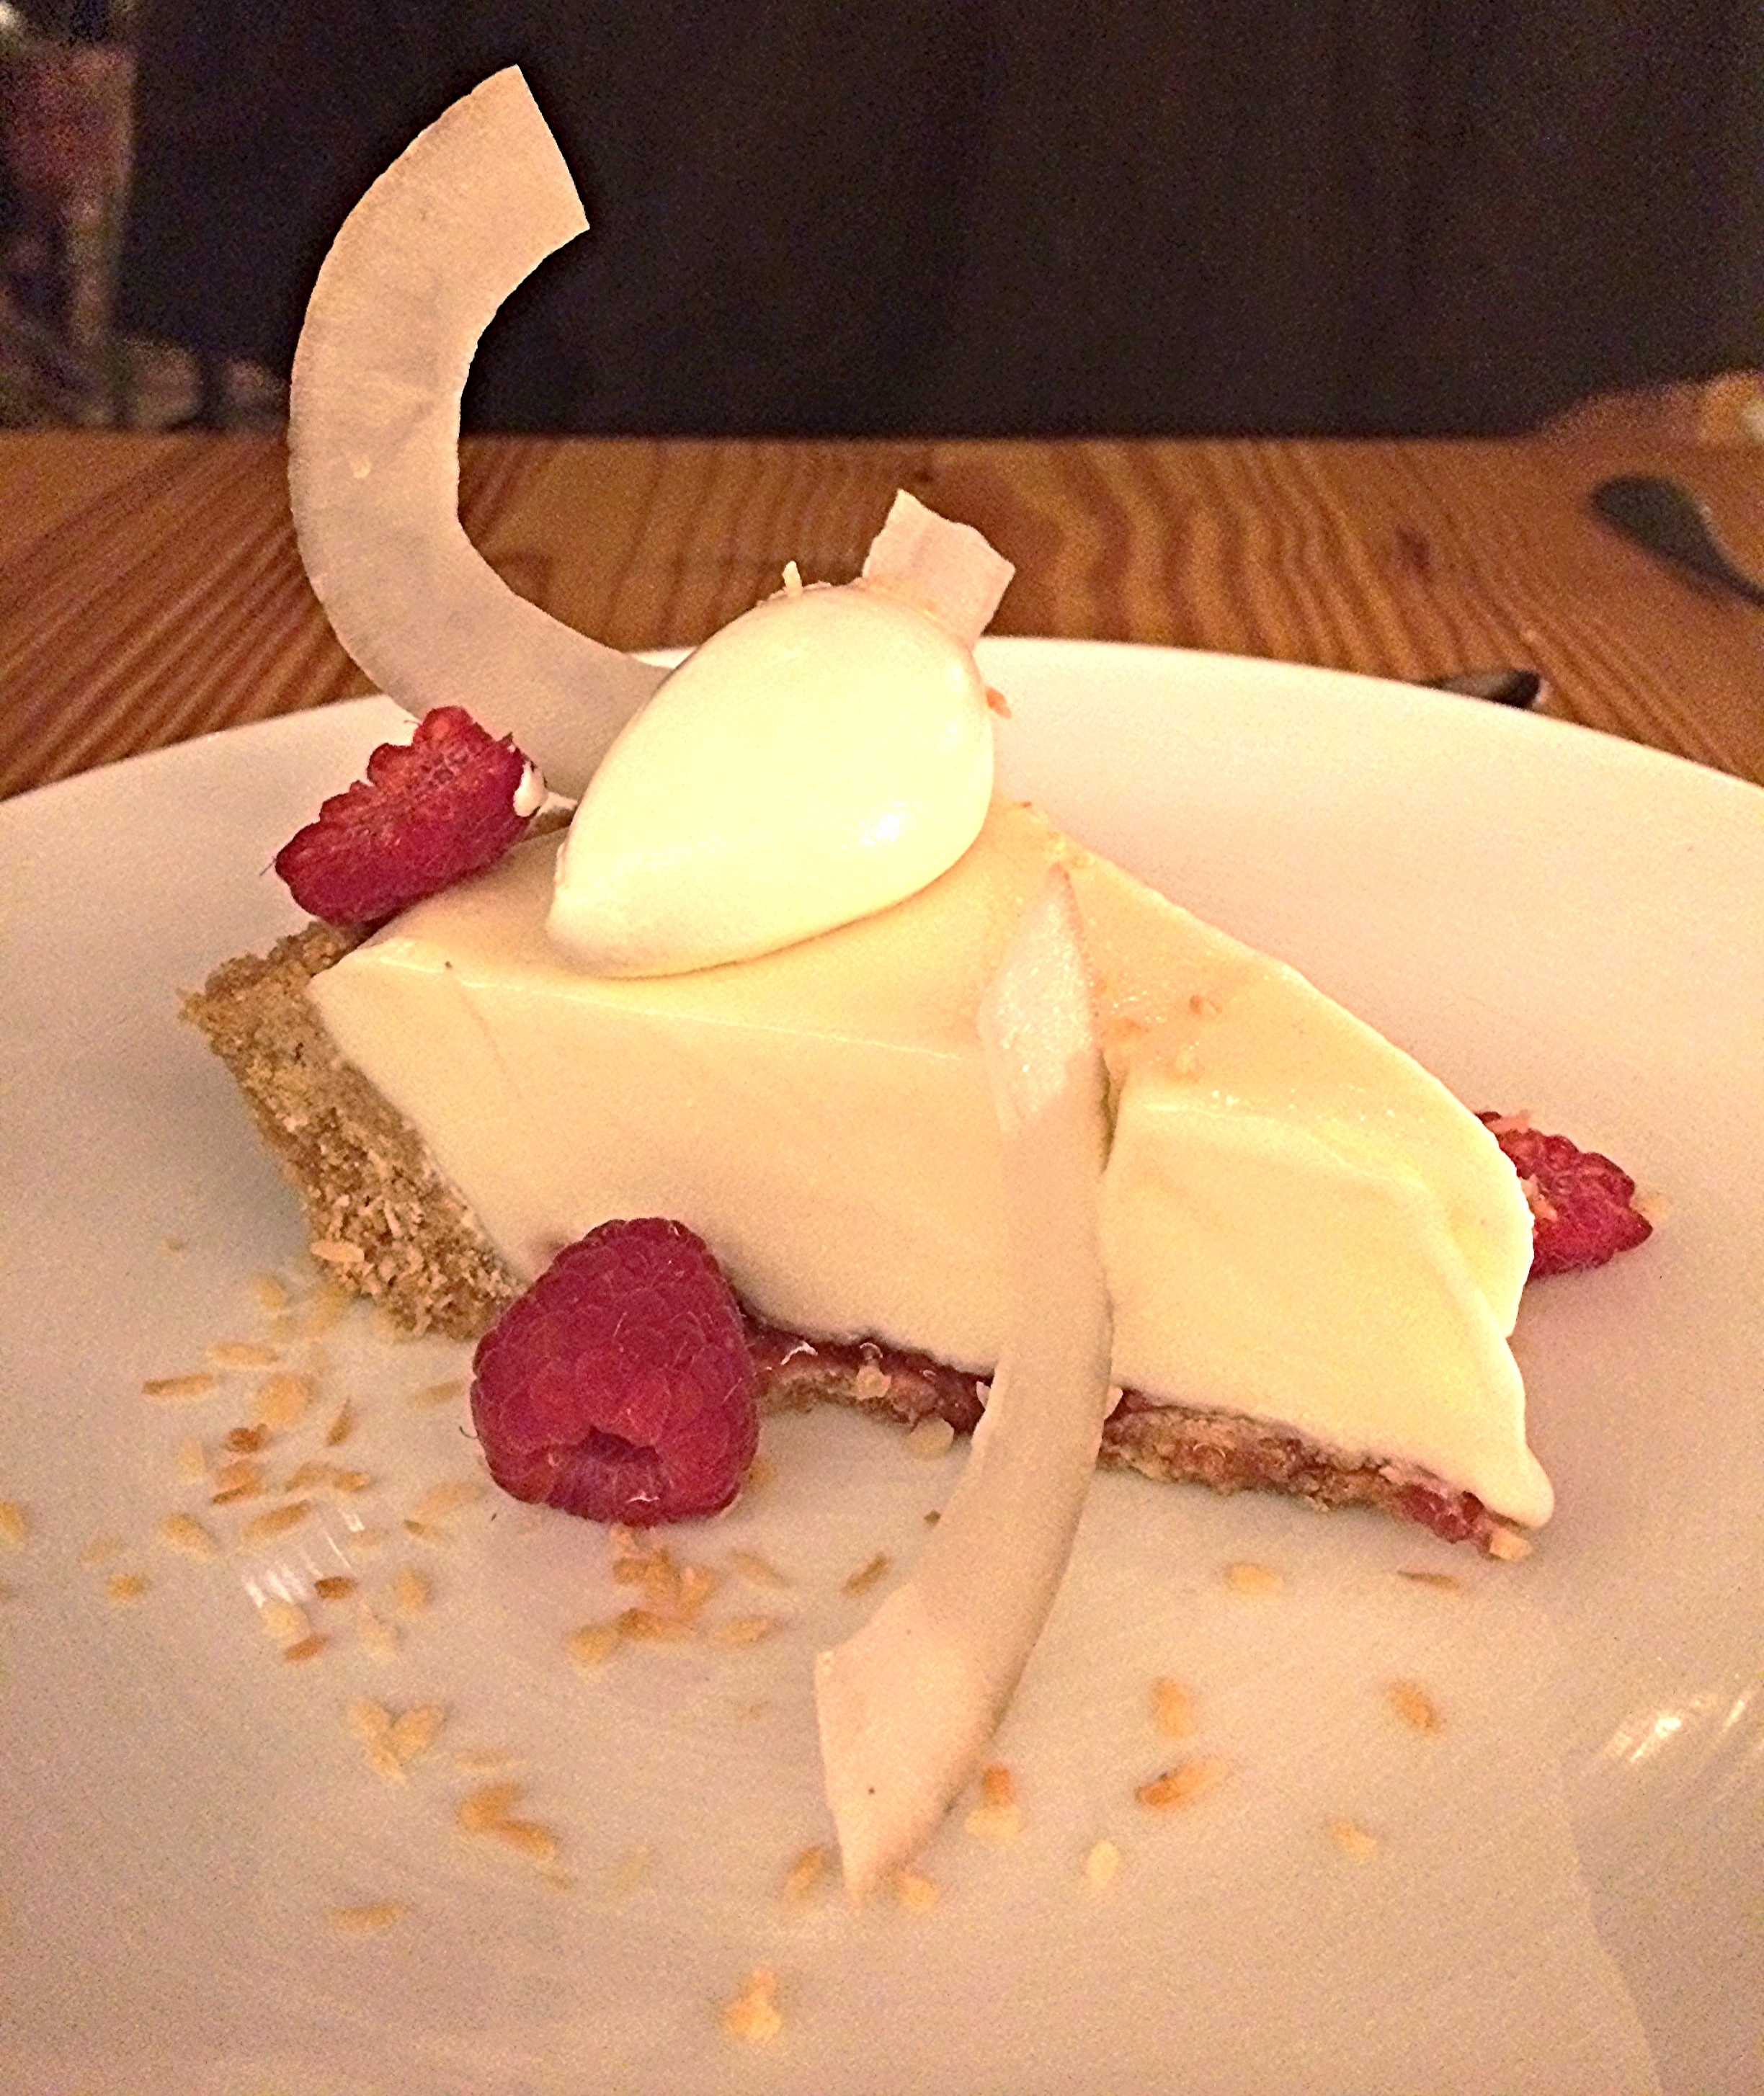 coconut ice cream pie, graham cracker crust, raspberries